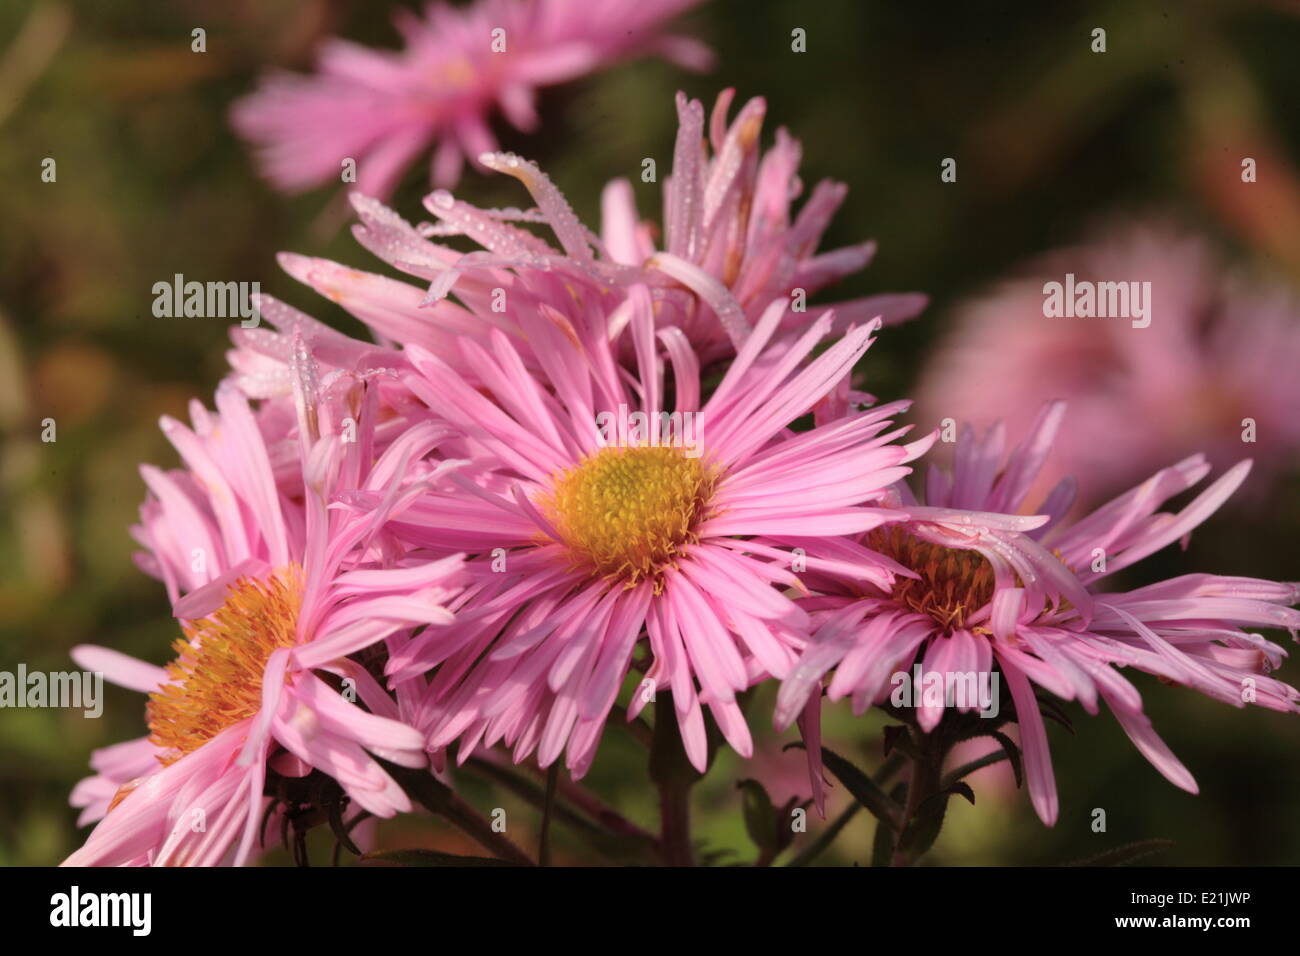 New England Aster 'Rosa Sieger' - Stock Image